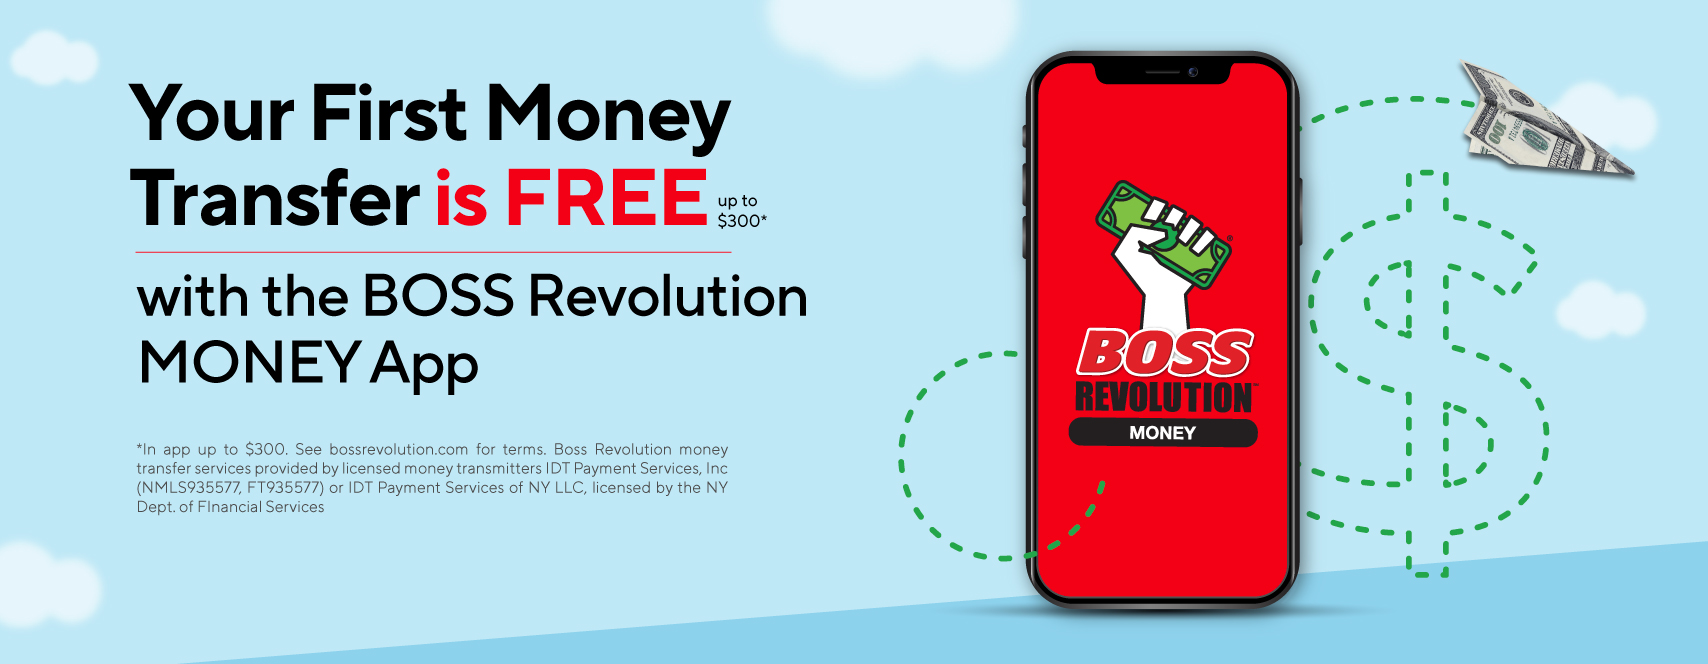 Your first money transfer with the BOSS Revolution Money app is FREE up to $300 -- Send money to help fulfill their dreams